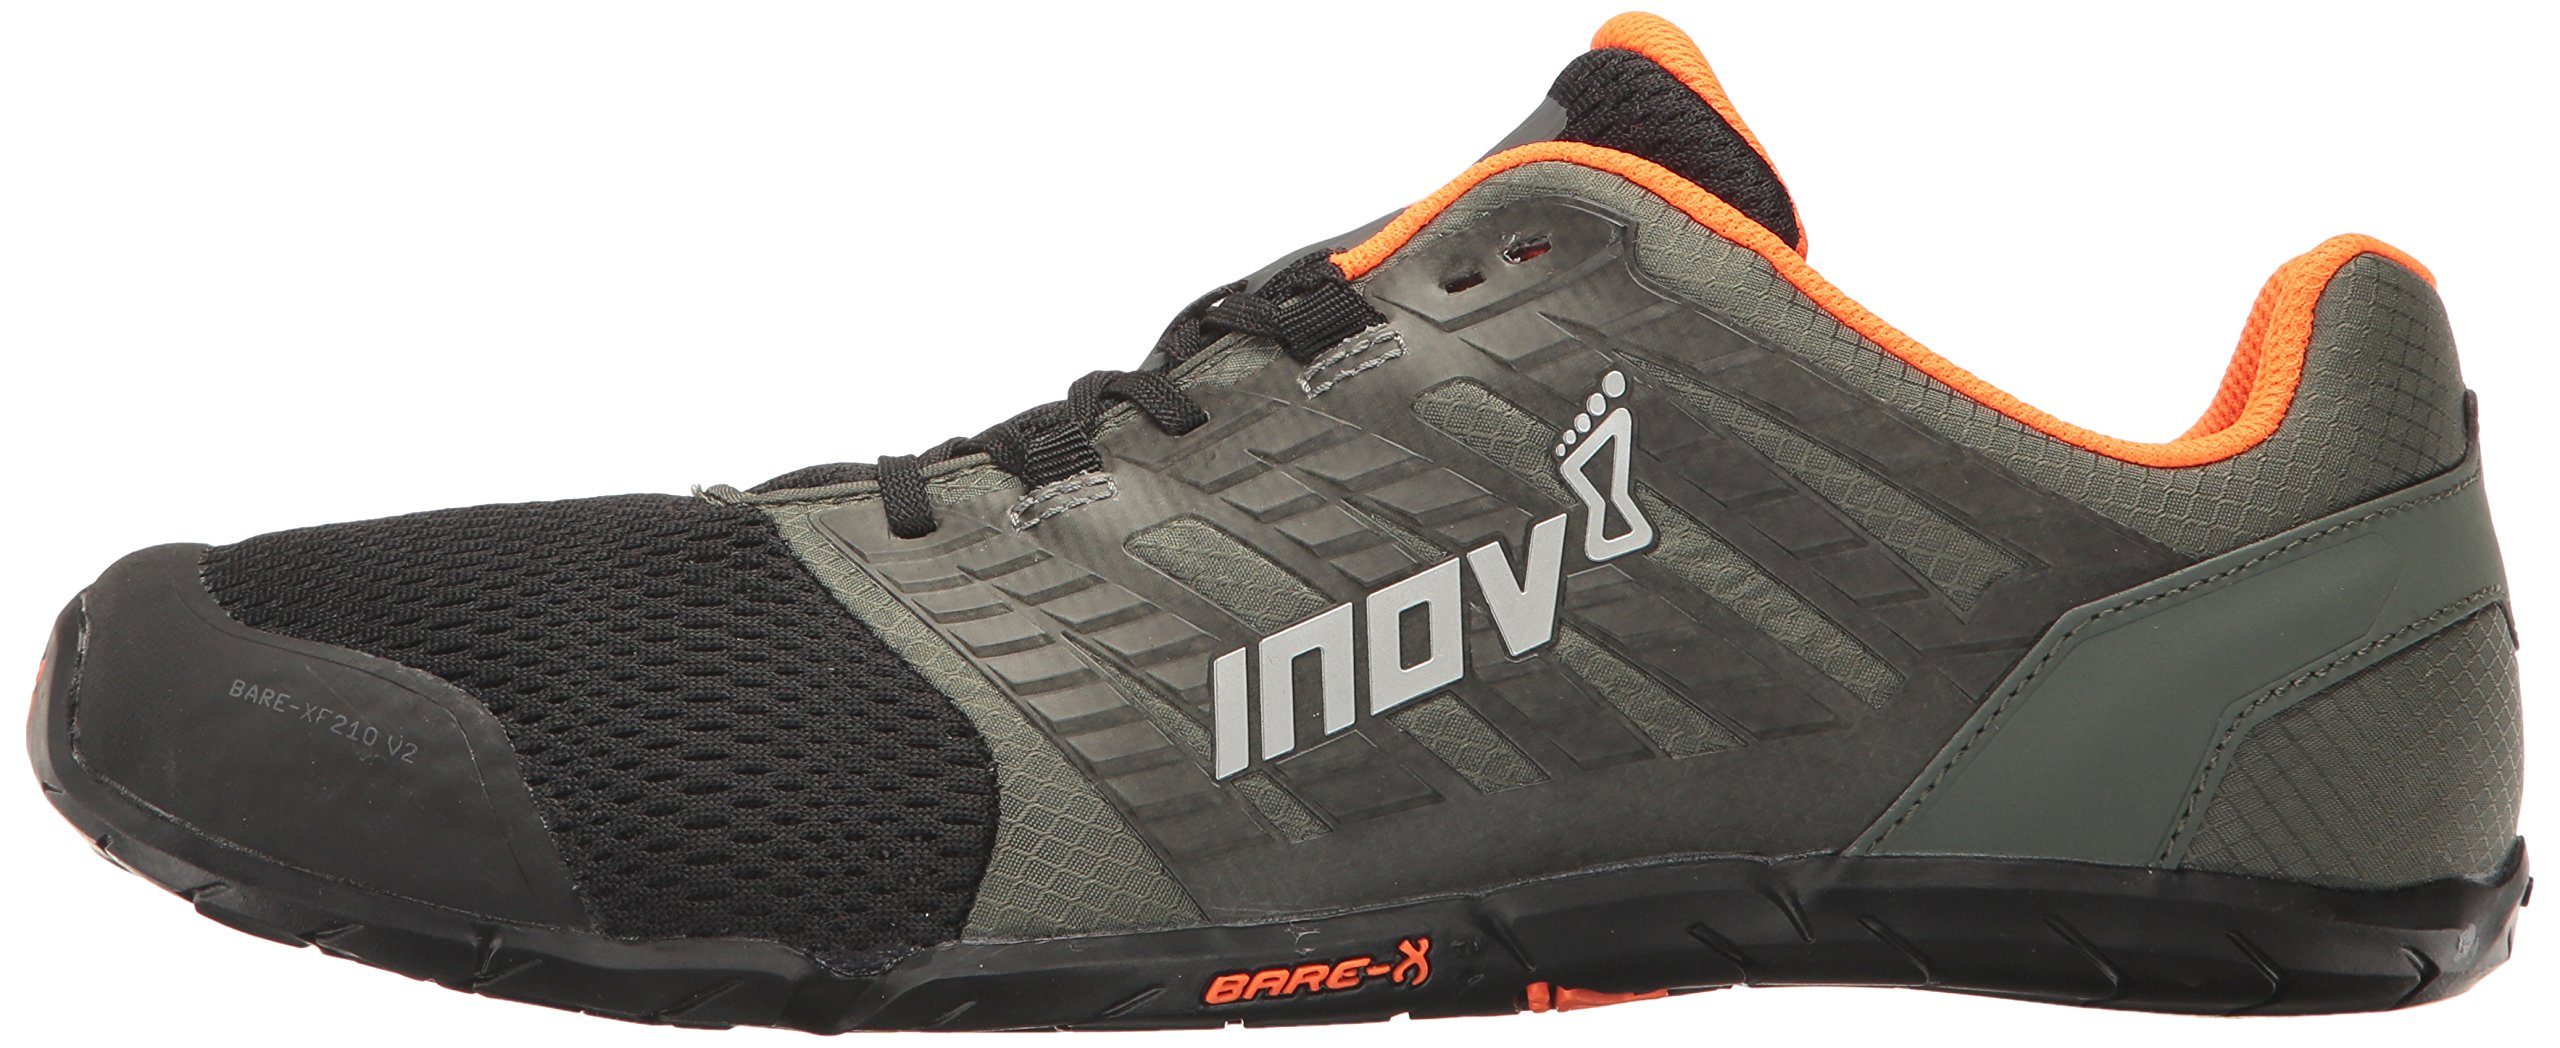 Inov-8 Men's Bare-XF 210 v2 (M) Cross Trainer Grey/Black/Orange 11 D US by Inov-8 (Image #5)